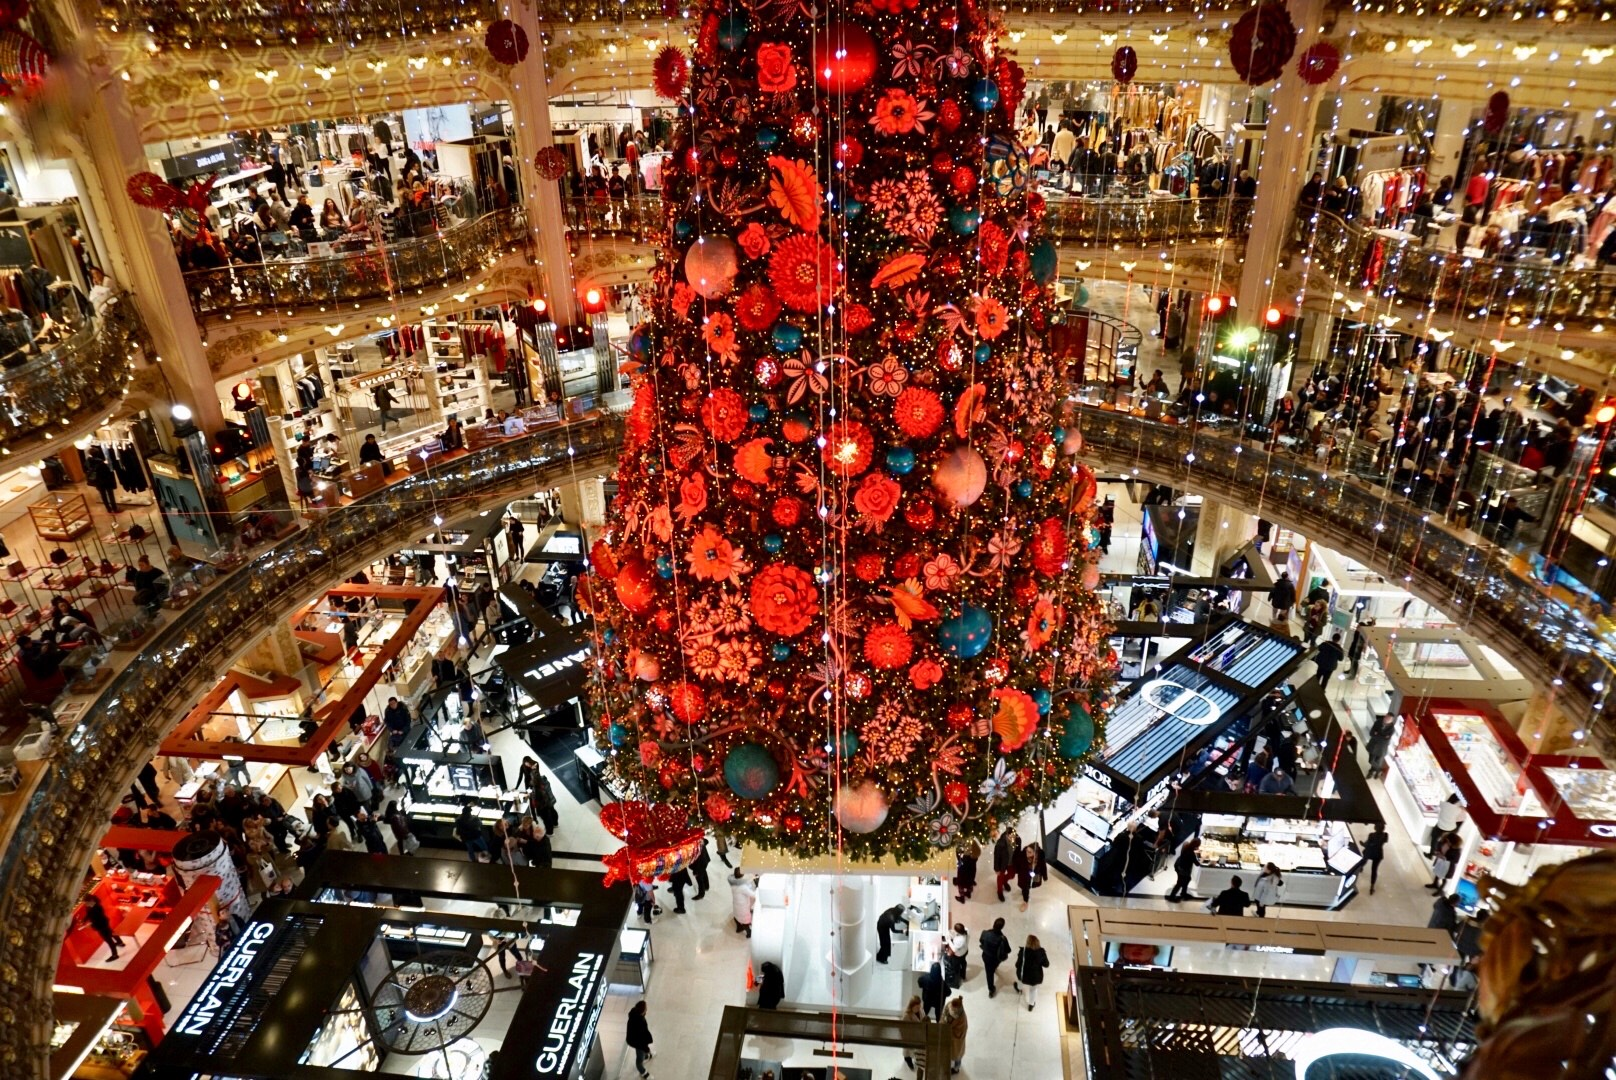 Paris in December, Christmas tree, wonderland, Galeries Lafayette